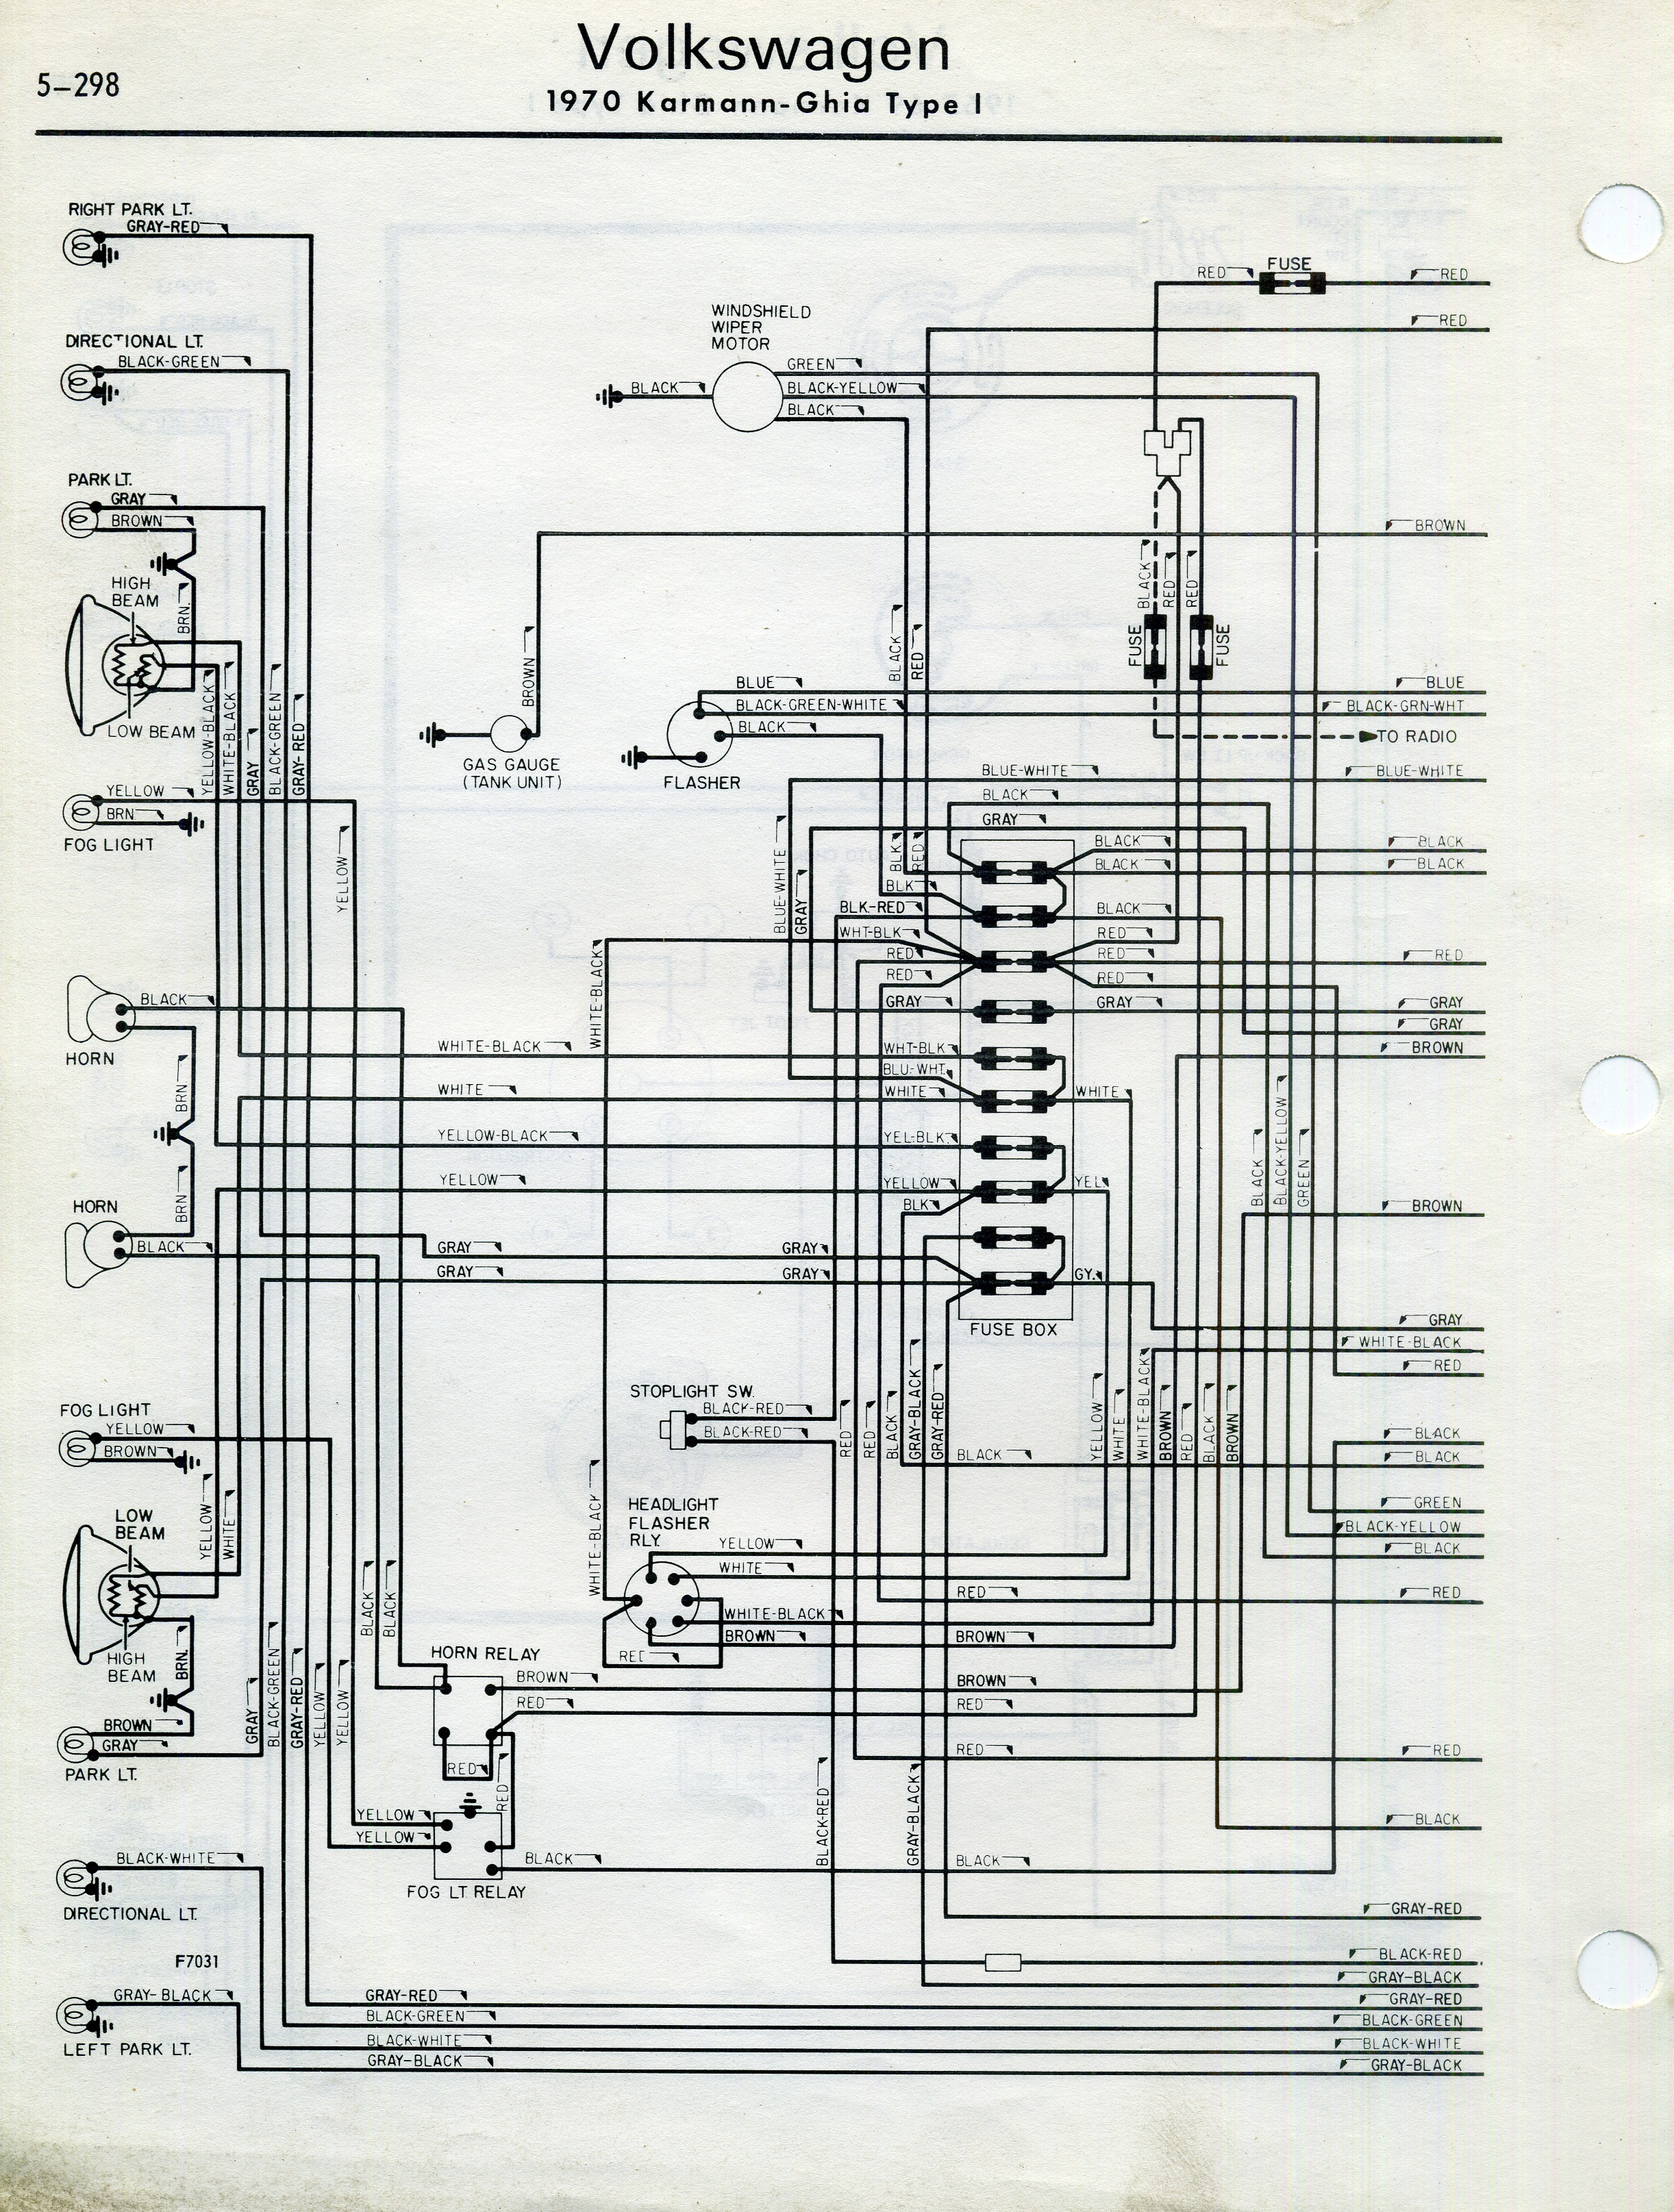 70Karmann_Ghia_1_Mitc Understanding Car Wiring Diagrams on understanding schematic diagrams, understanding ladder diagrams, understanding foundation diagrams, understanding transformer diagrams, electronic circuit diagrams, understanding engineering drawings, understanding electrical diagrams, understanding circuits diagrams, pinout diagrams,